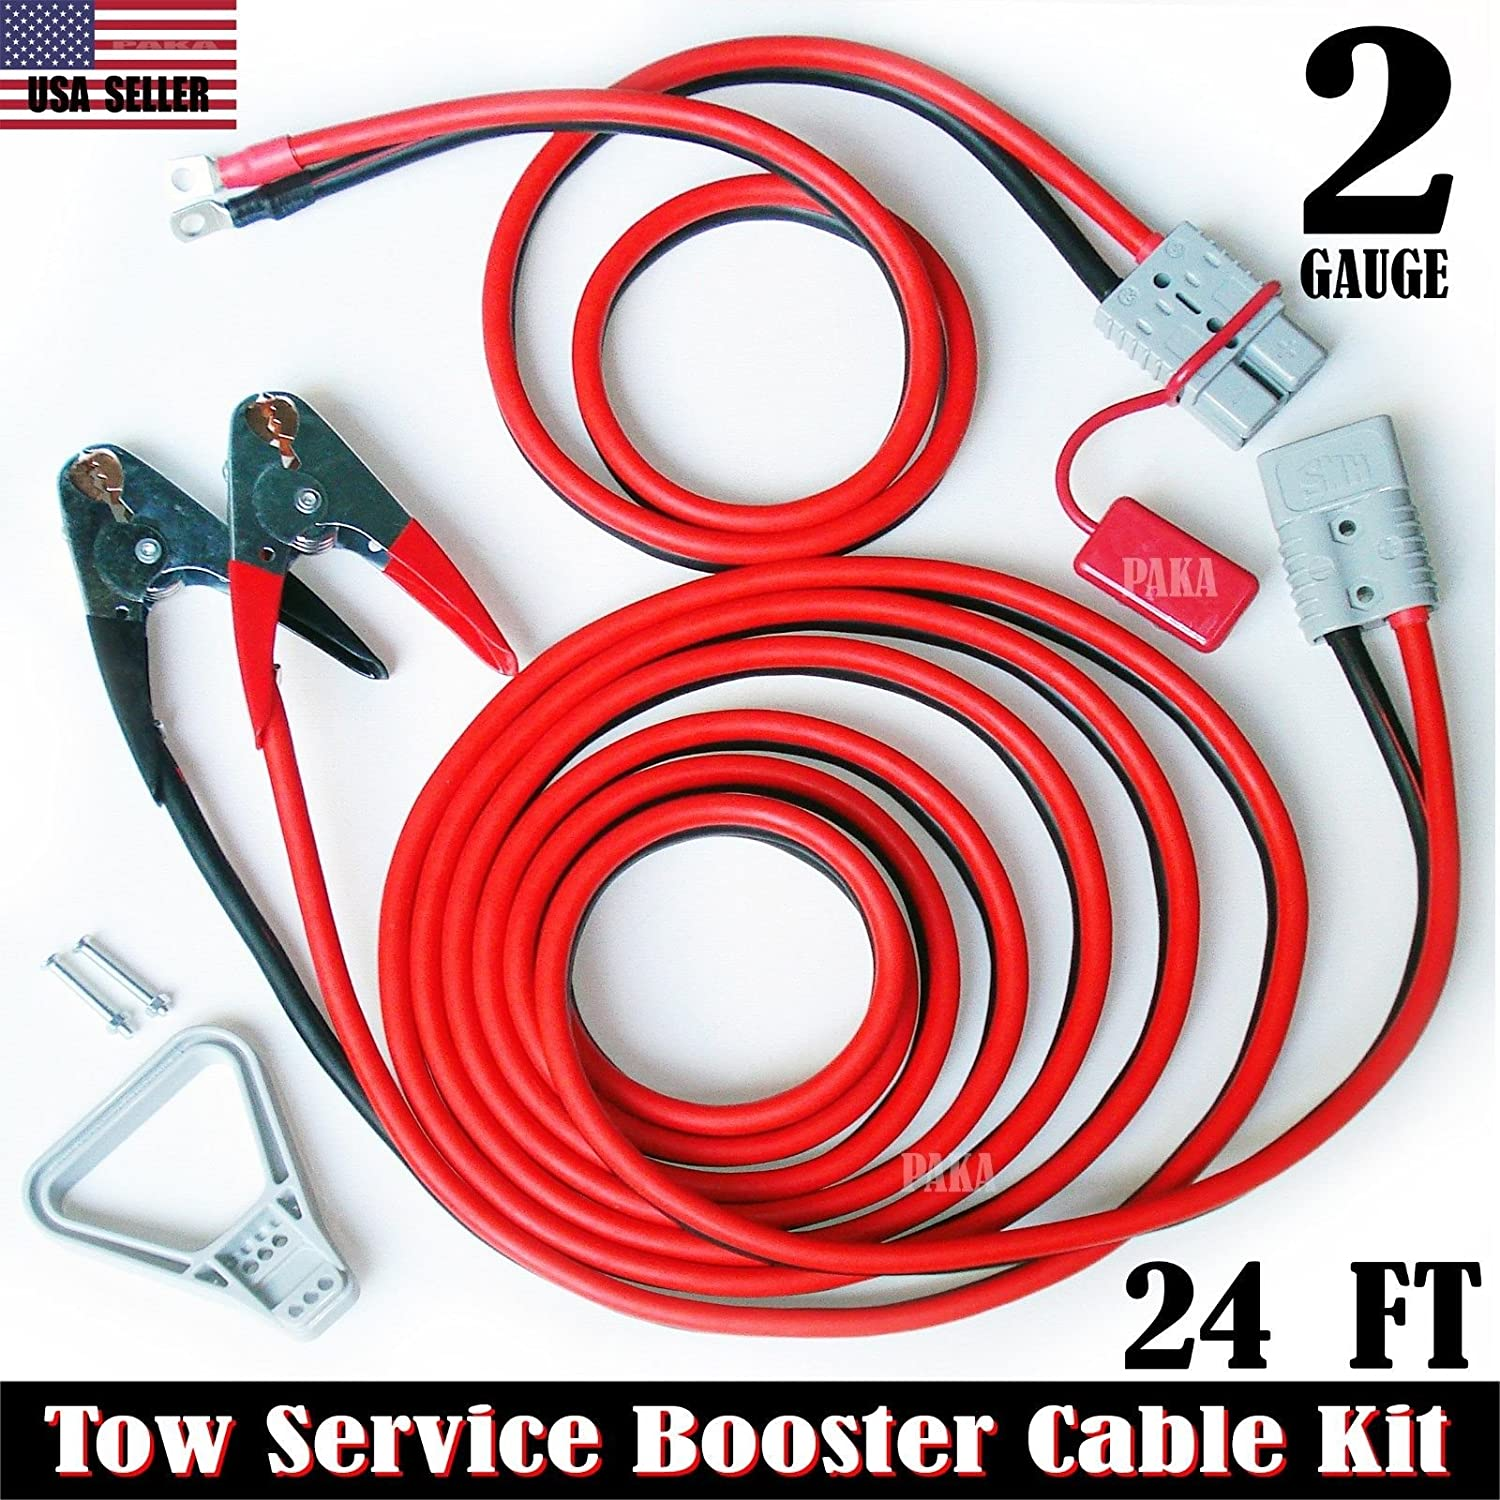 2 GAUGE 24 FT QUICK DISCONNECT JUMPER-BOOSTER CABLE SET,TOW-SERVICE